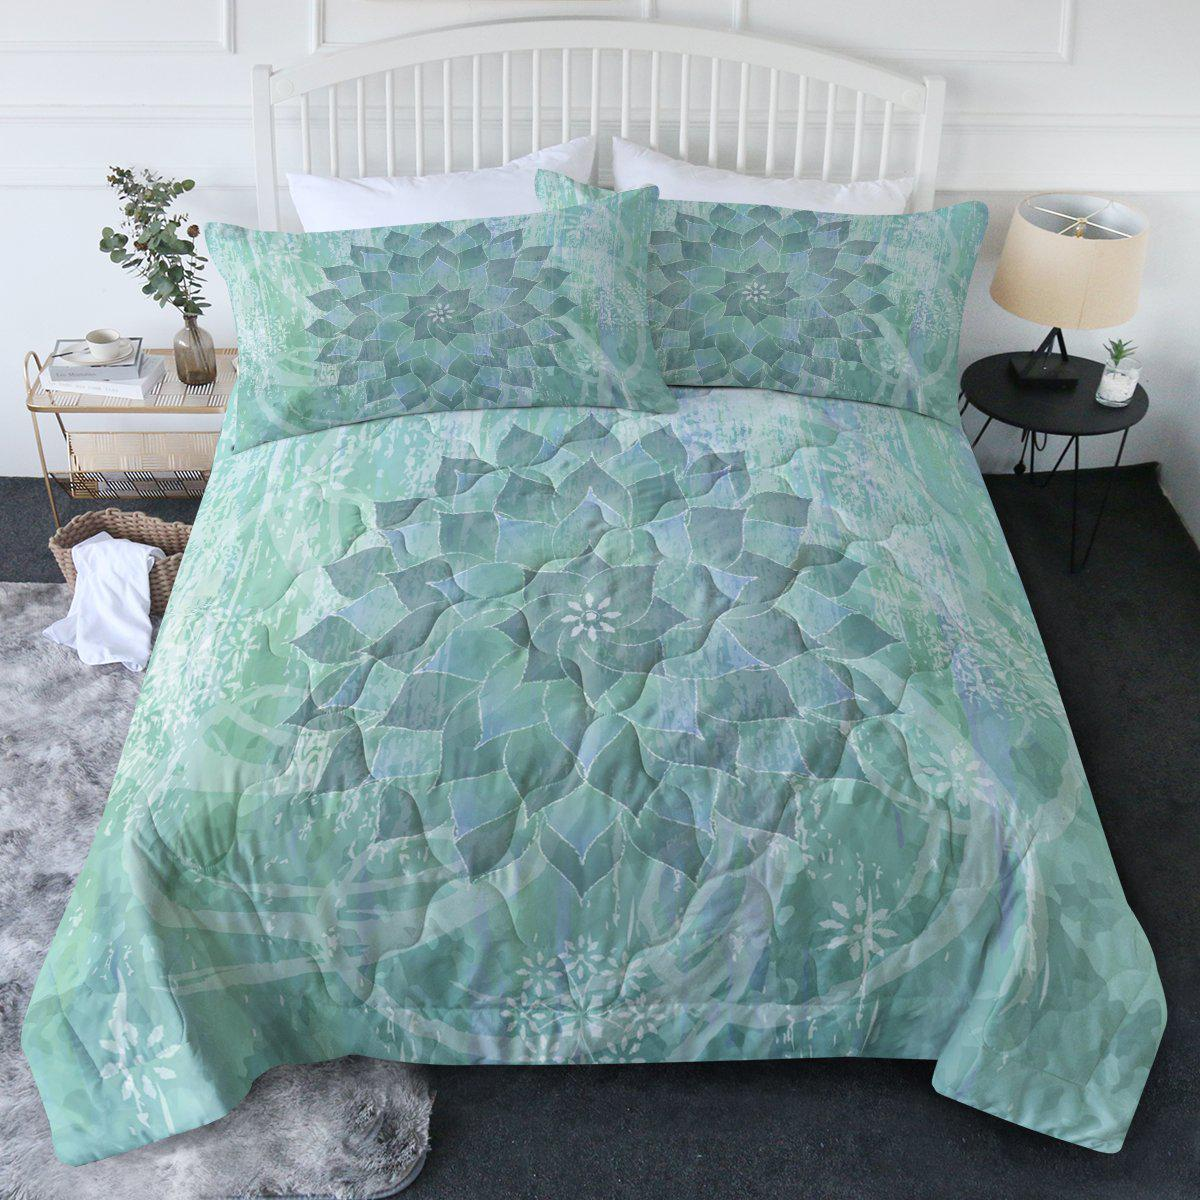 The Ocean Hues Comforter Set-Coastal Passion